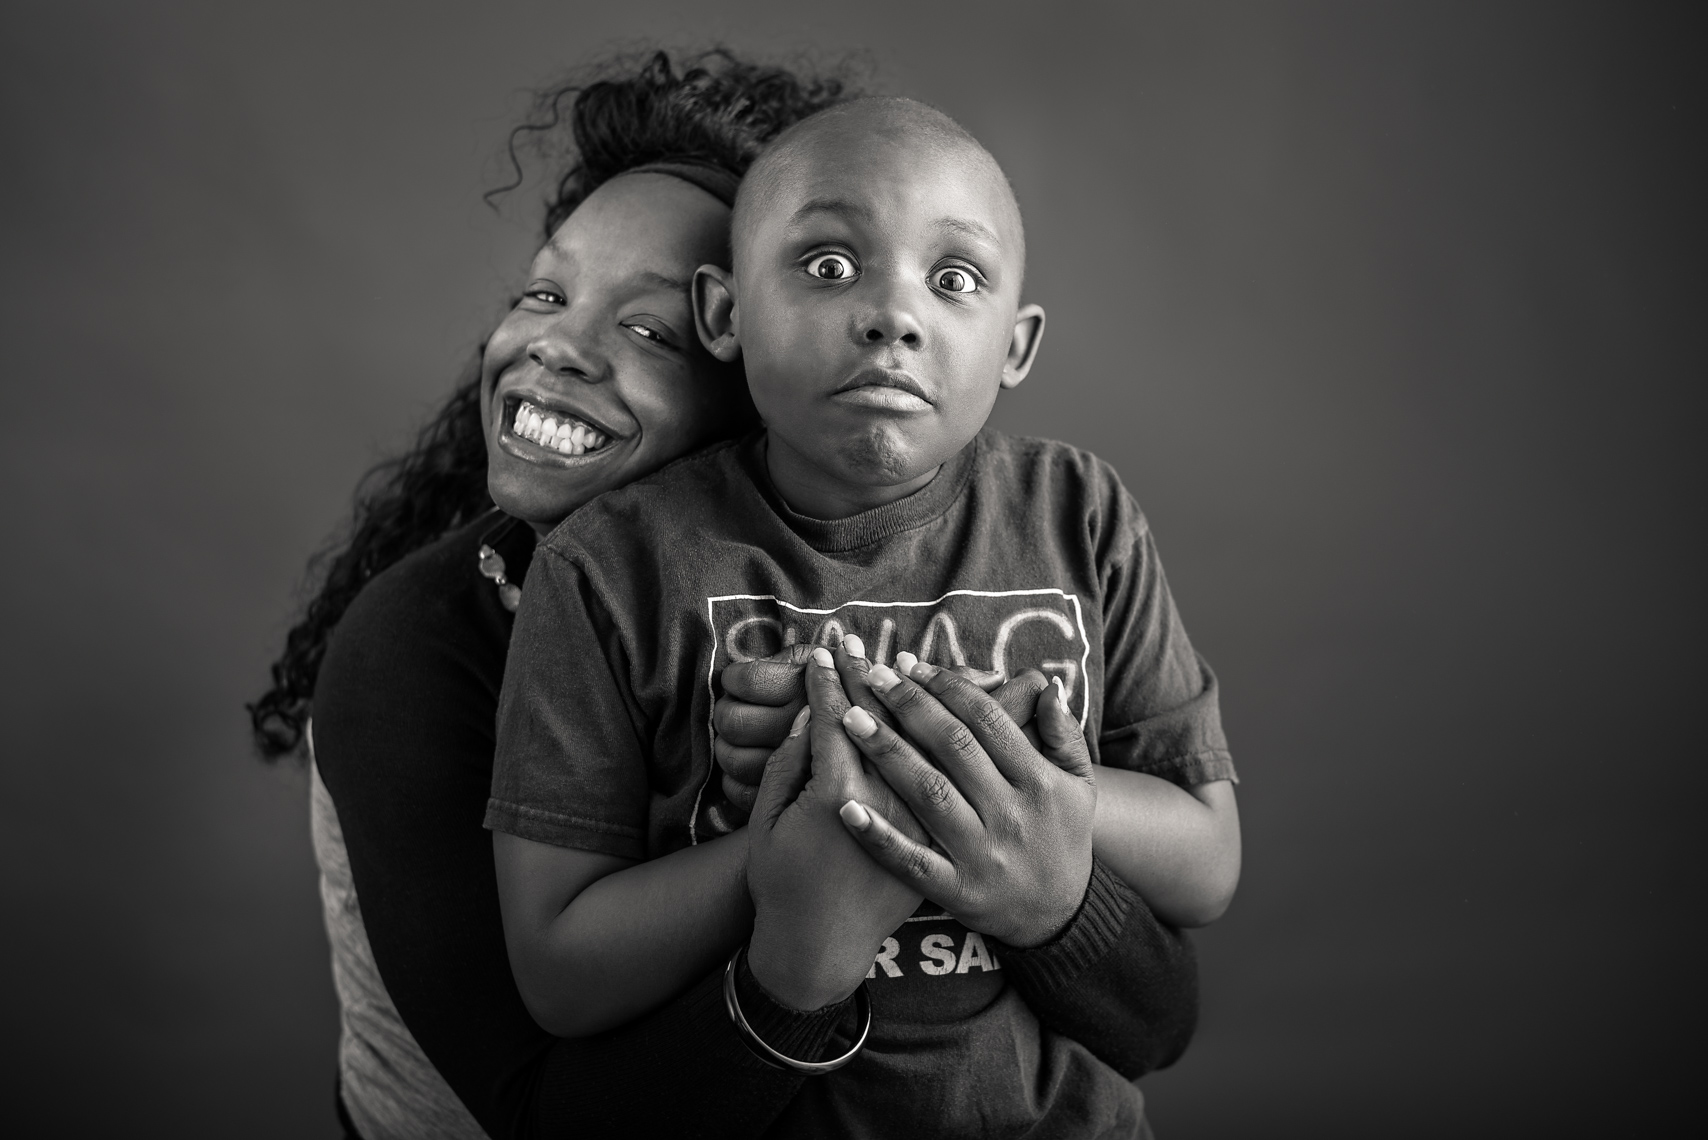 Flashes of Hope, portrait mother with her son who is fighting cancer. Resilience, authentic, silly, fun, happy, strength, hope, love, support, together, portrait, editorial, reportage, news, photographer, portraiture